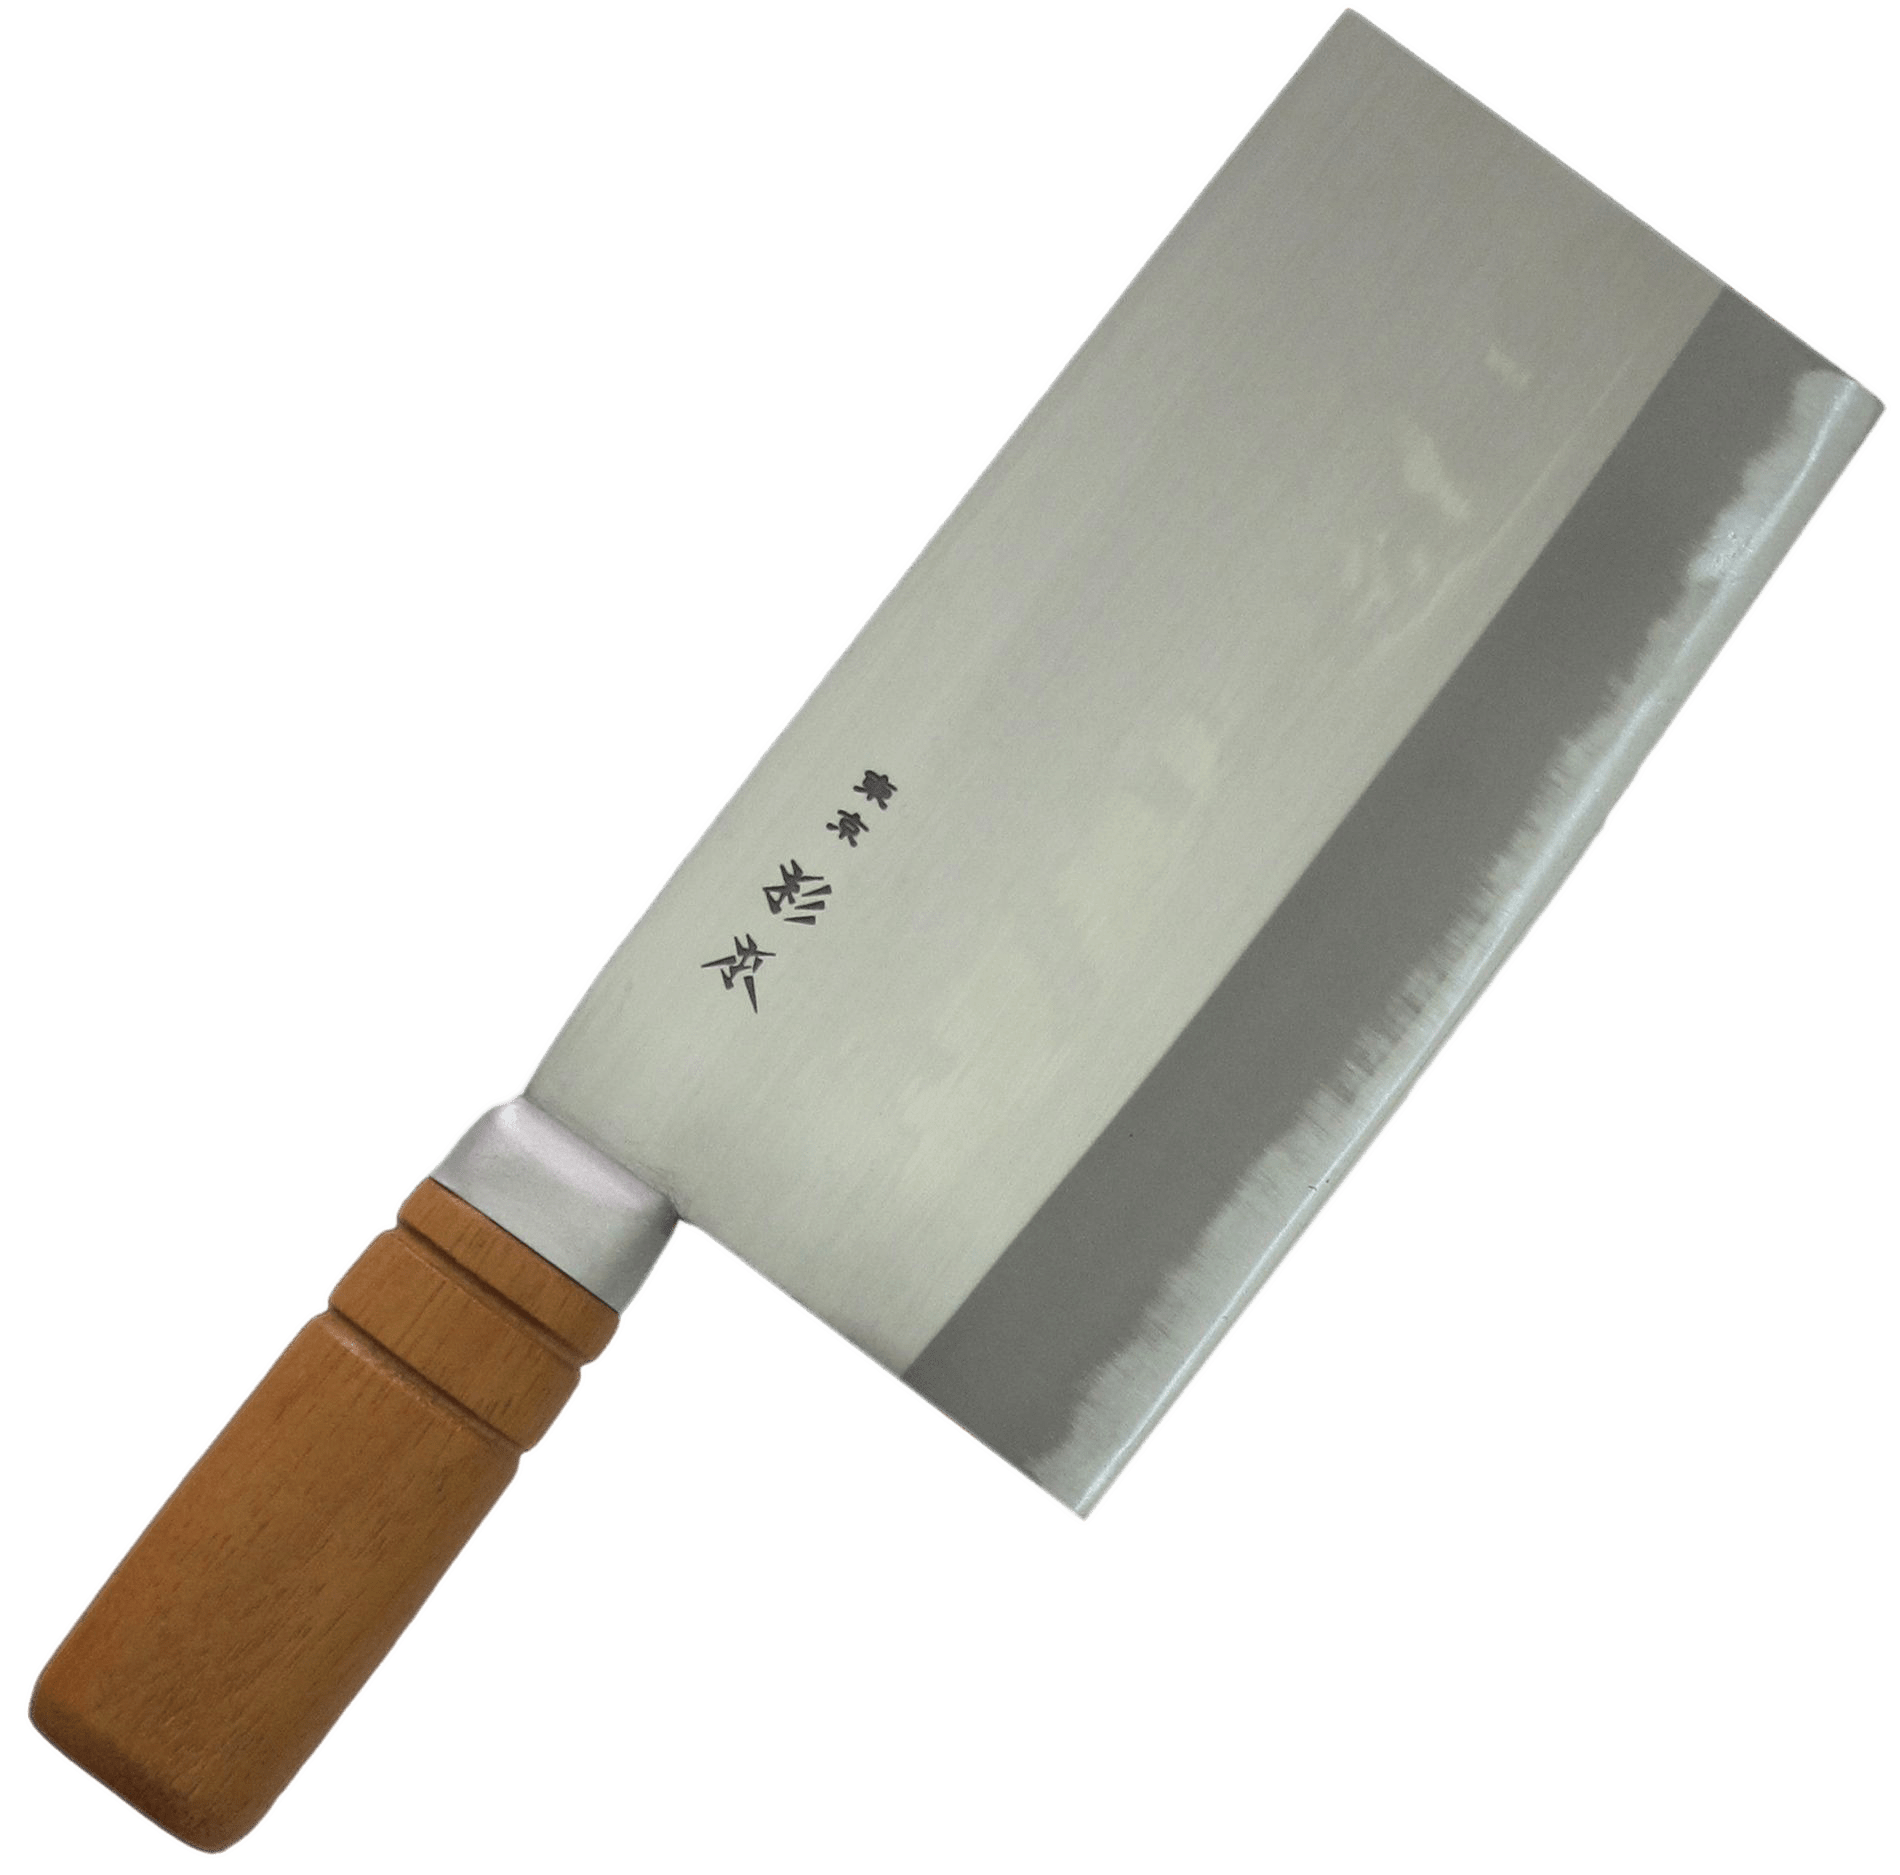 Knife PNG - 27095